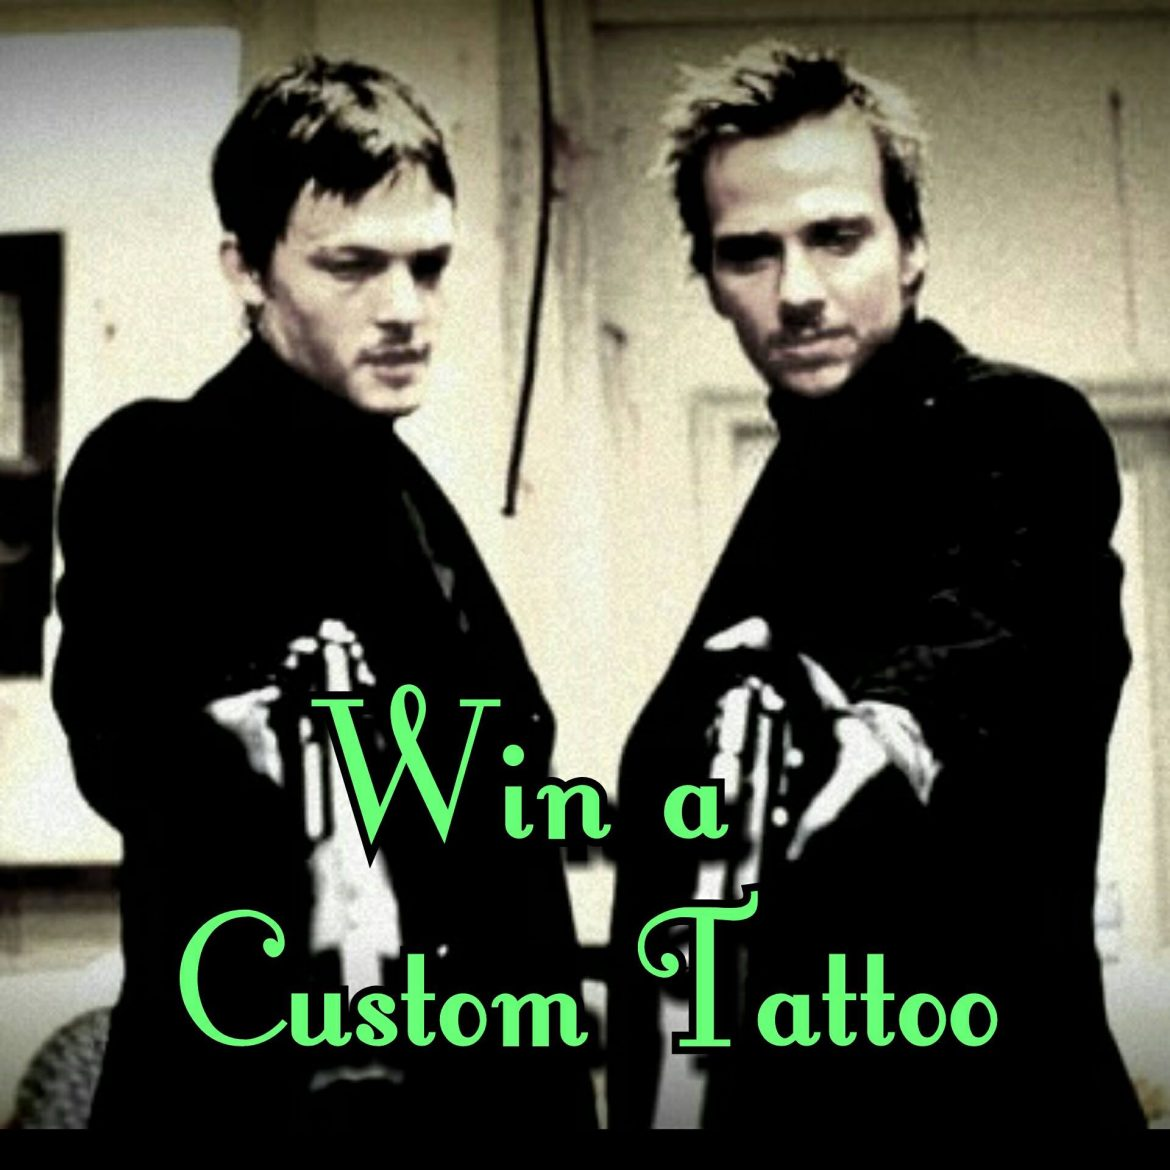 Enter to Win a Custom Tattoo